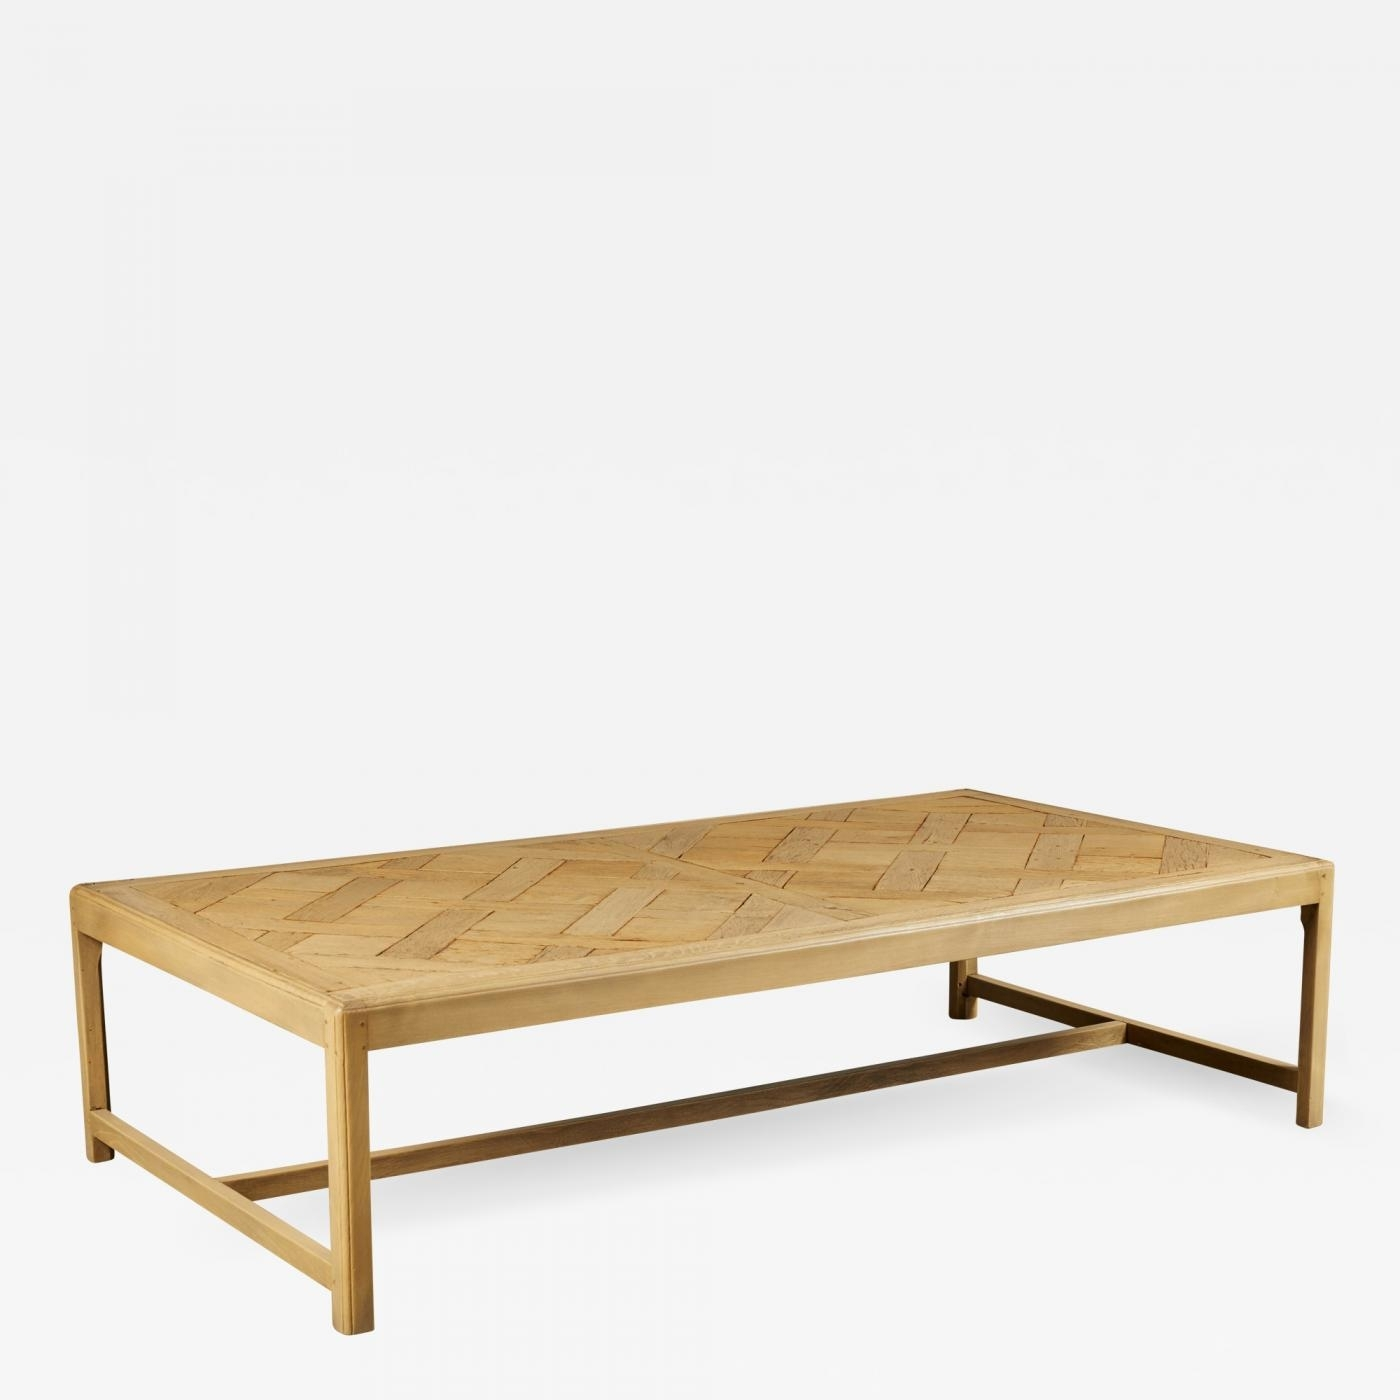 20Th C. French Parquet Bleached Oak Coffee Table pertaining to Parquet Coffee Tables (Image 1 of 30)